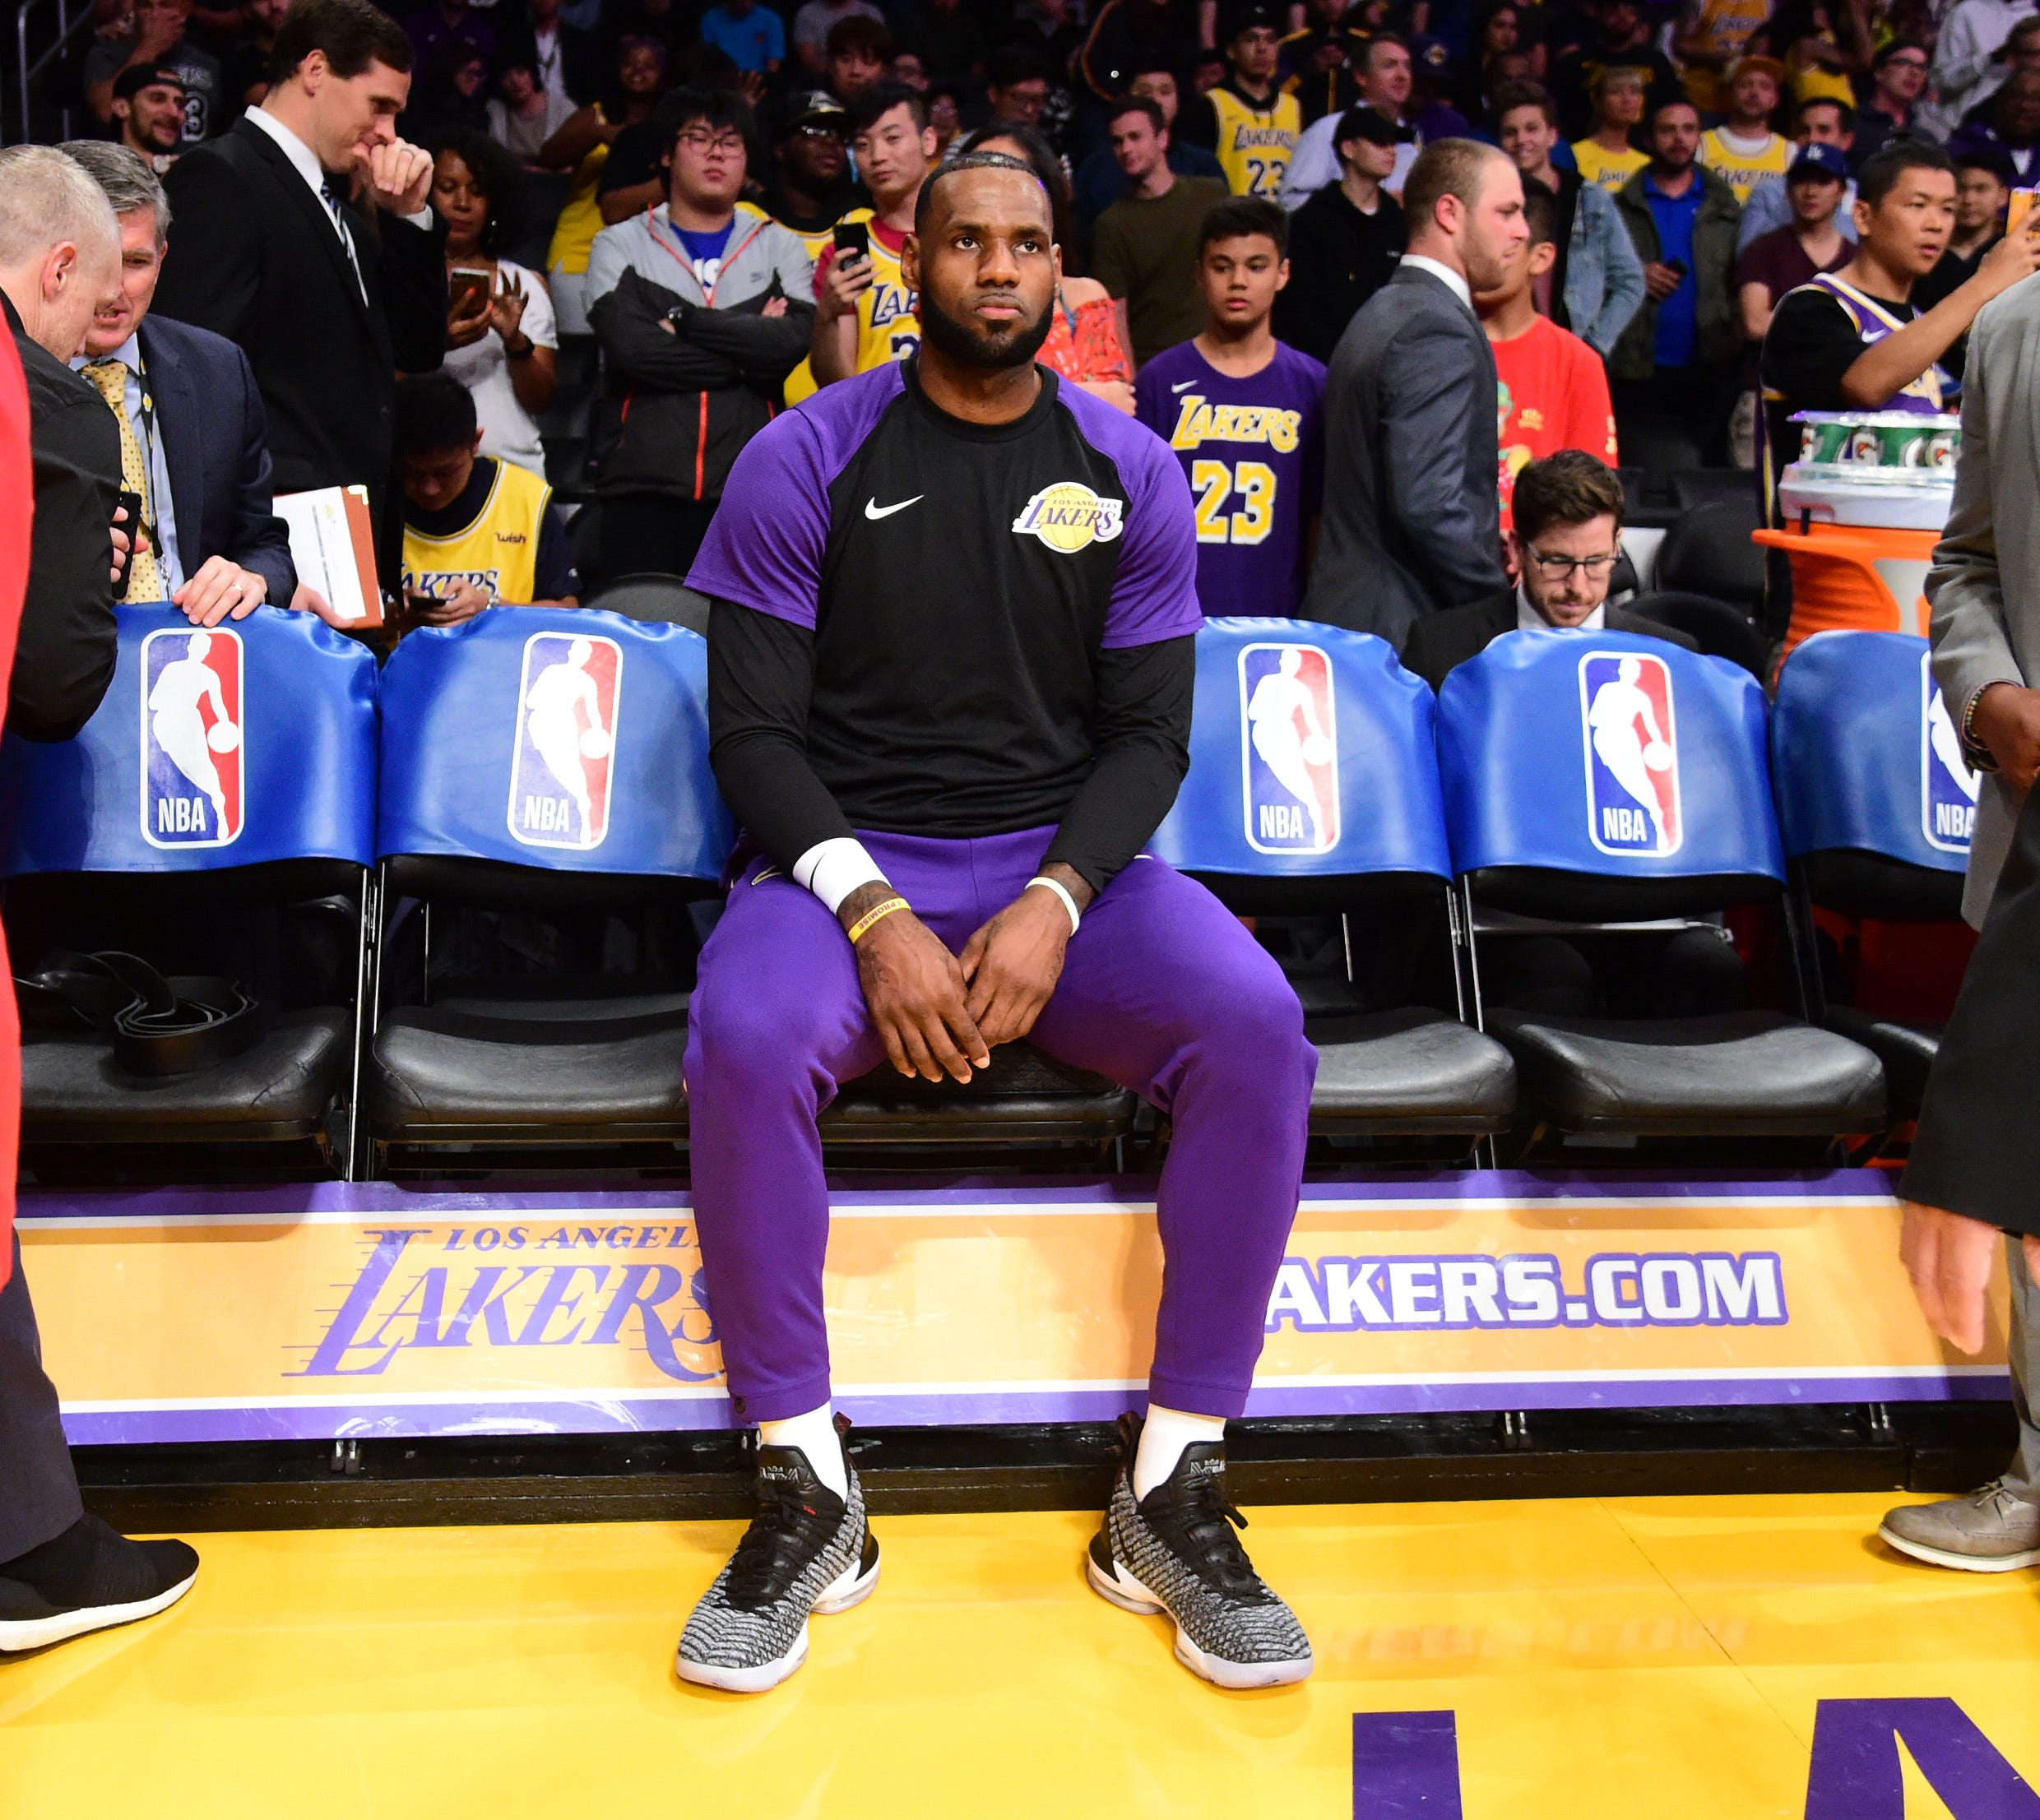 d0b20362c075 Lakers loss to Clippers puts postseason hopes on life support